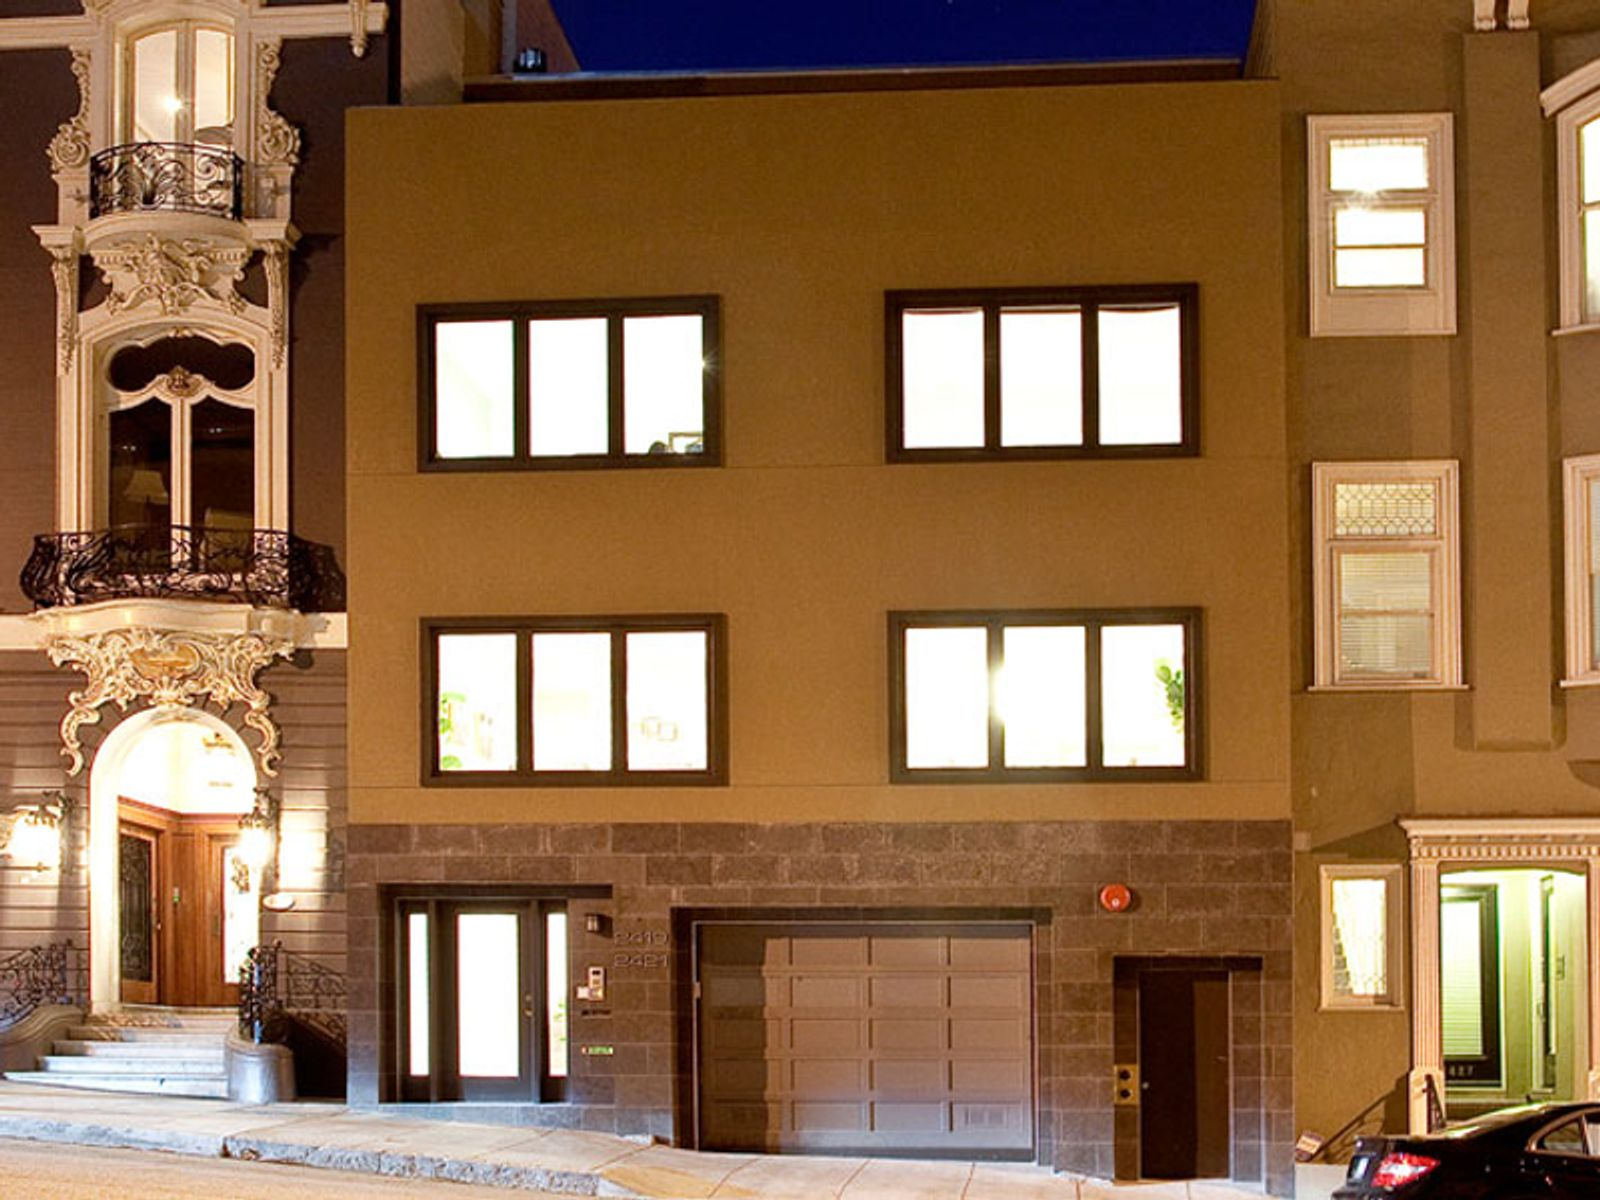 Modern luxury in pacific heights san francisco ca for San francisco real estate luxury